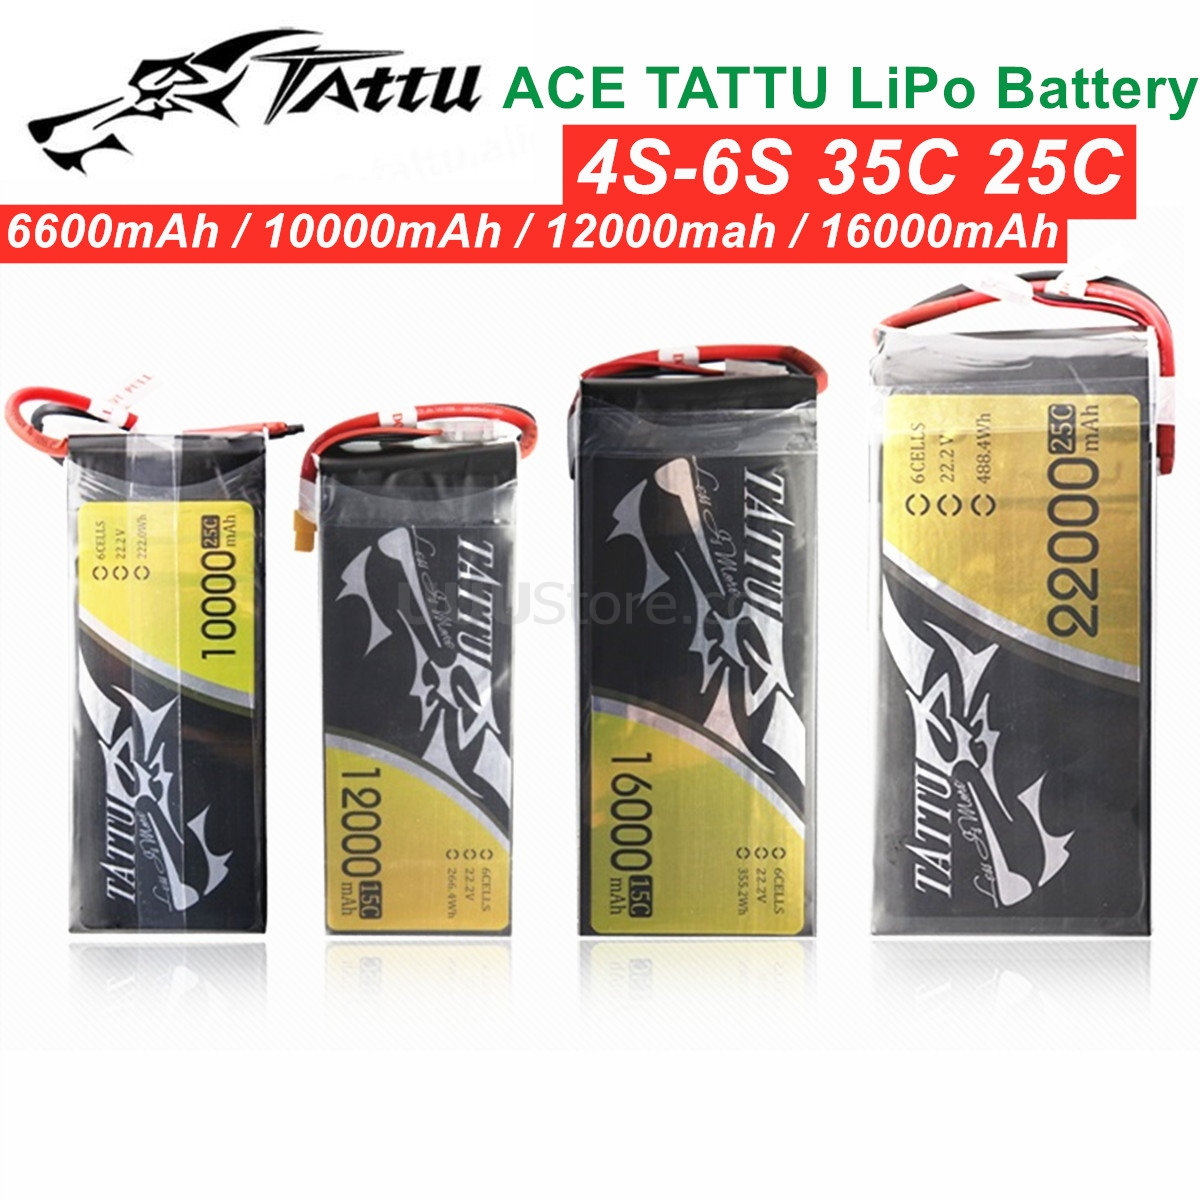 ACE TATTU <font><b>LiPo</b></font> Battery 4S-6S 35C 25C 6600mAh 10000mAh <font><b>12000mah</b></font> 16000mAh Plus 15C 25C 22.2V Lithium RC Battery for UAV Airplane image